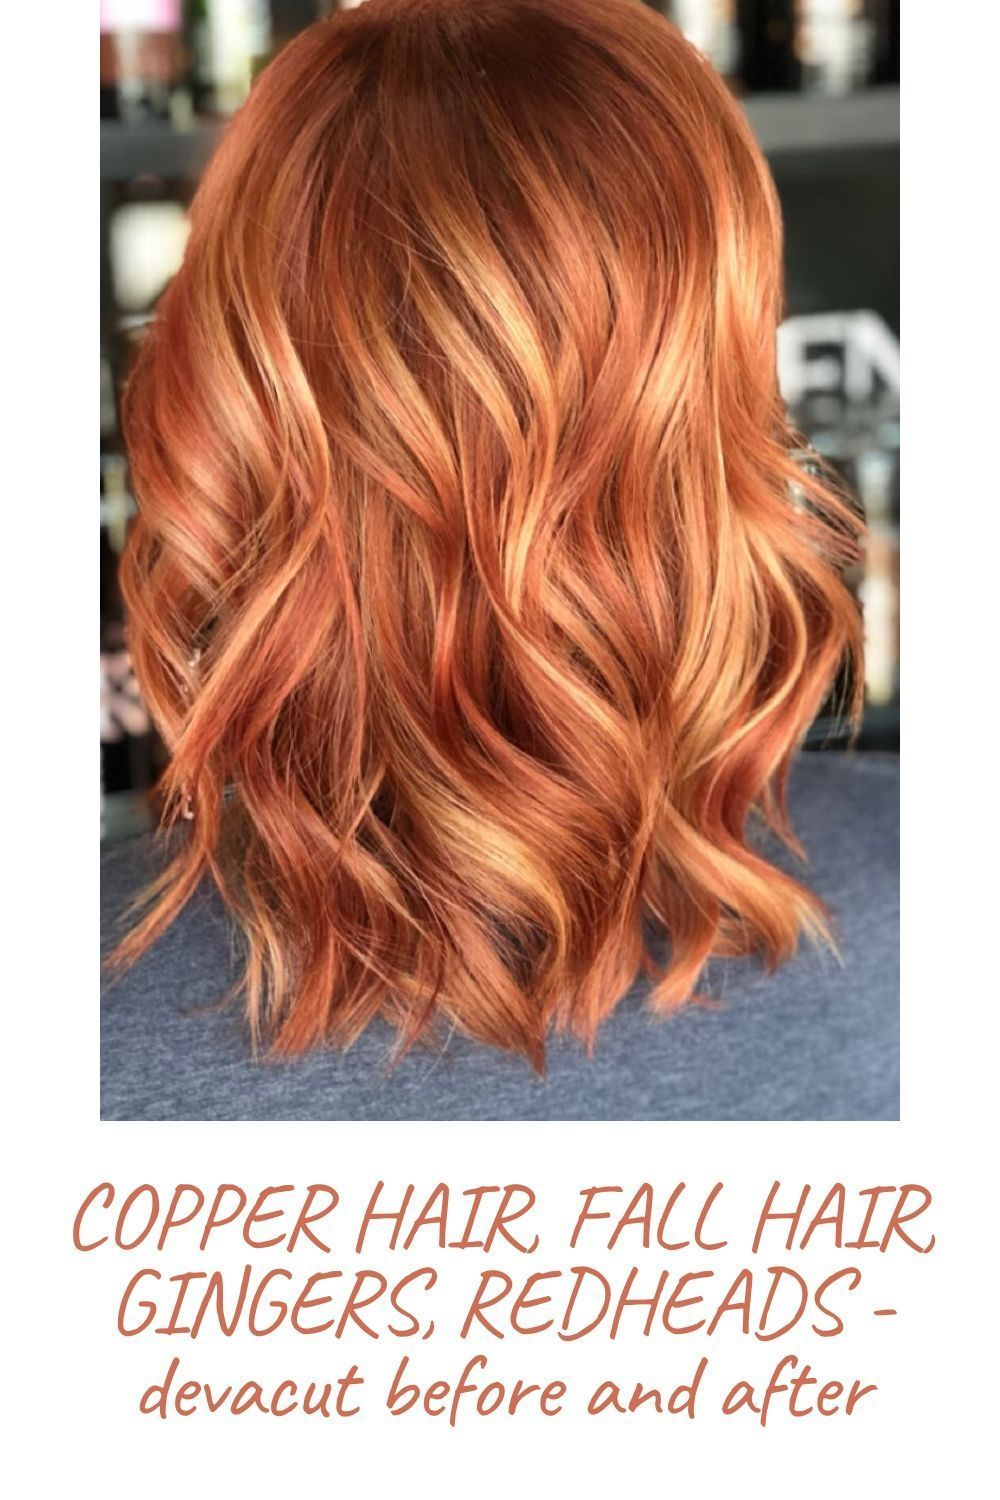 27+ Balayage natural red hair with highlights ideas in 2021